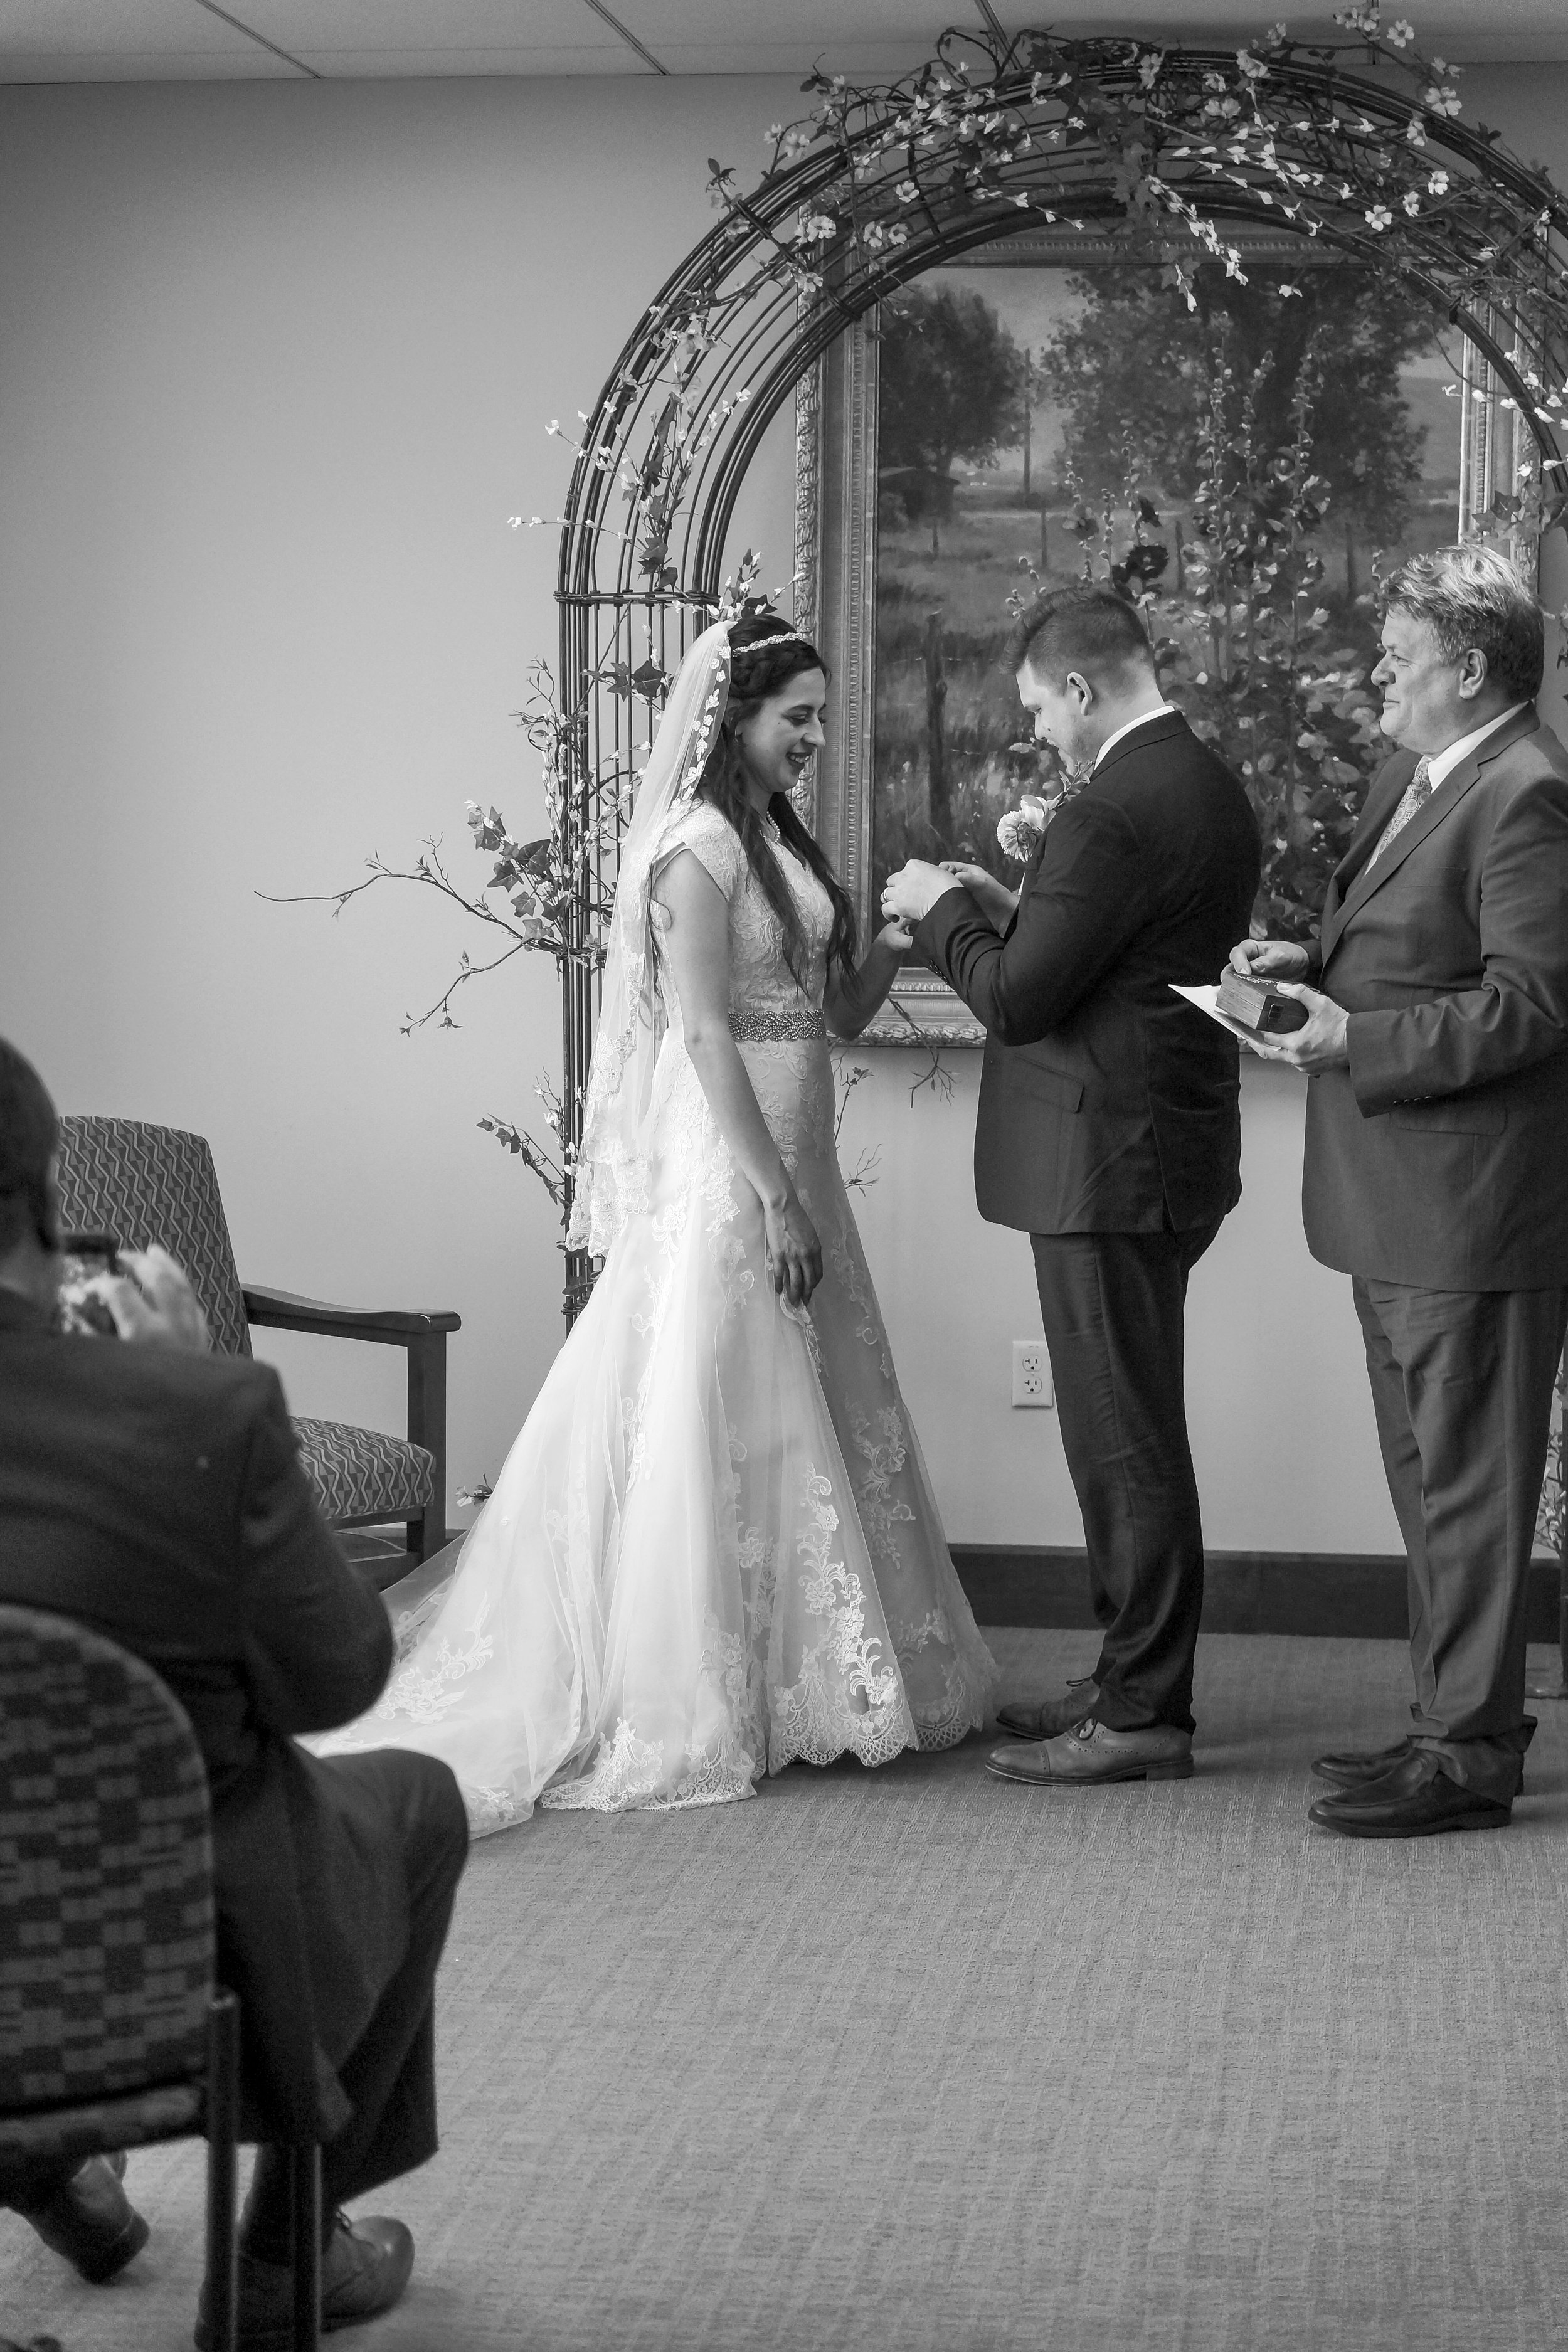 Ring Ceremony in the Zions Bank Founders Room by Bri Bergman Photography05.jpg